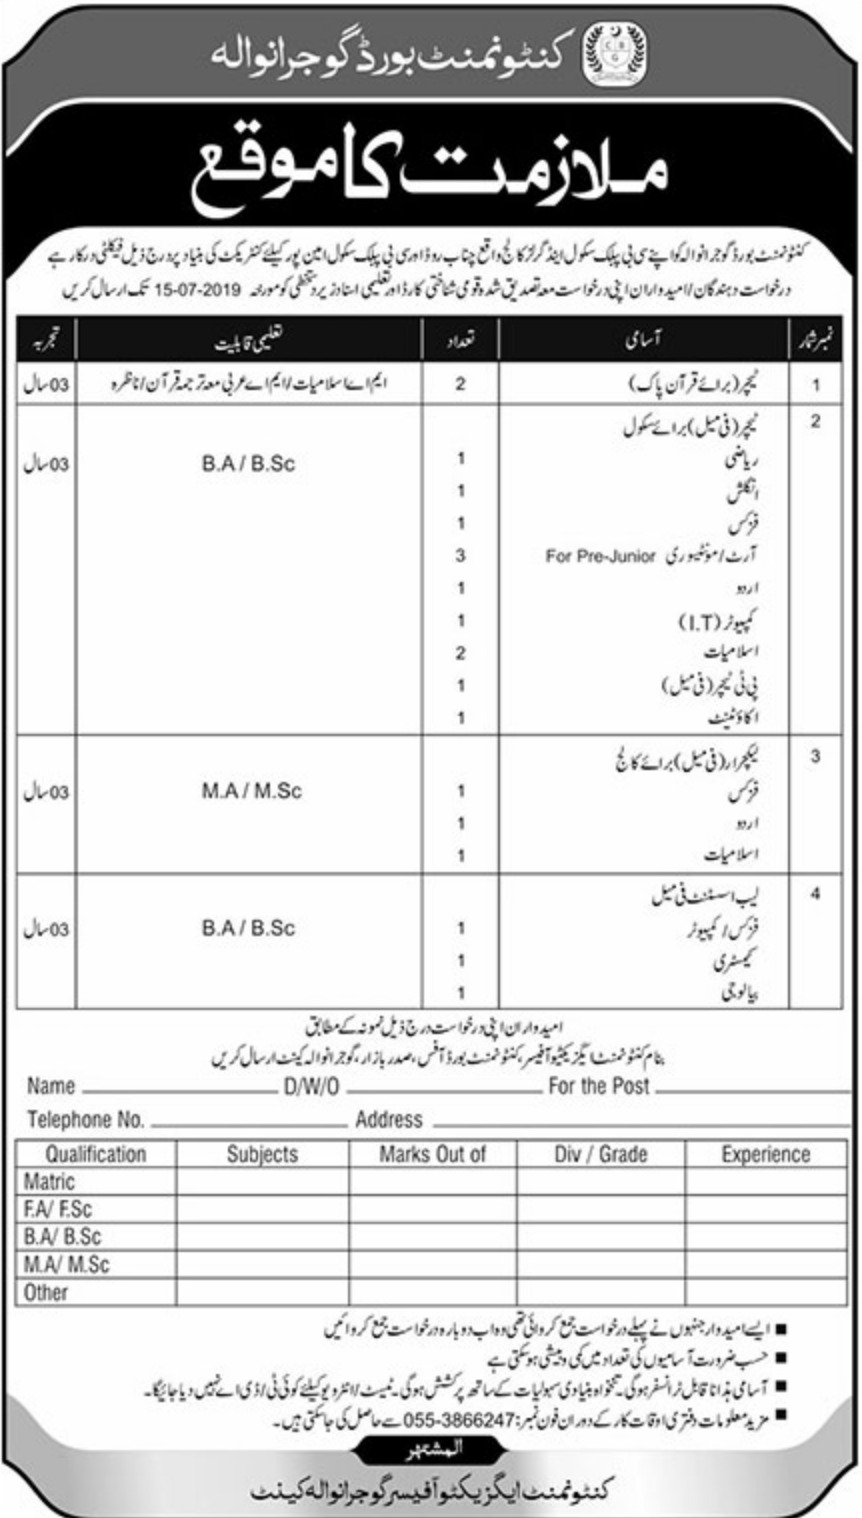 Cantonment Board Gujranwala Jobs 2019 CB Public School & Girls College